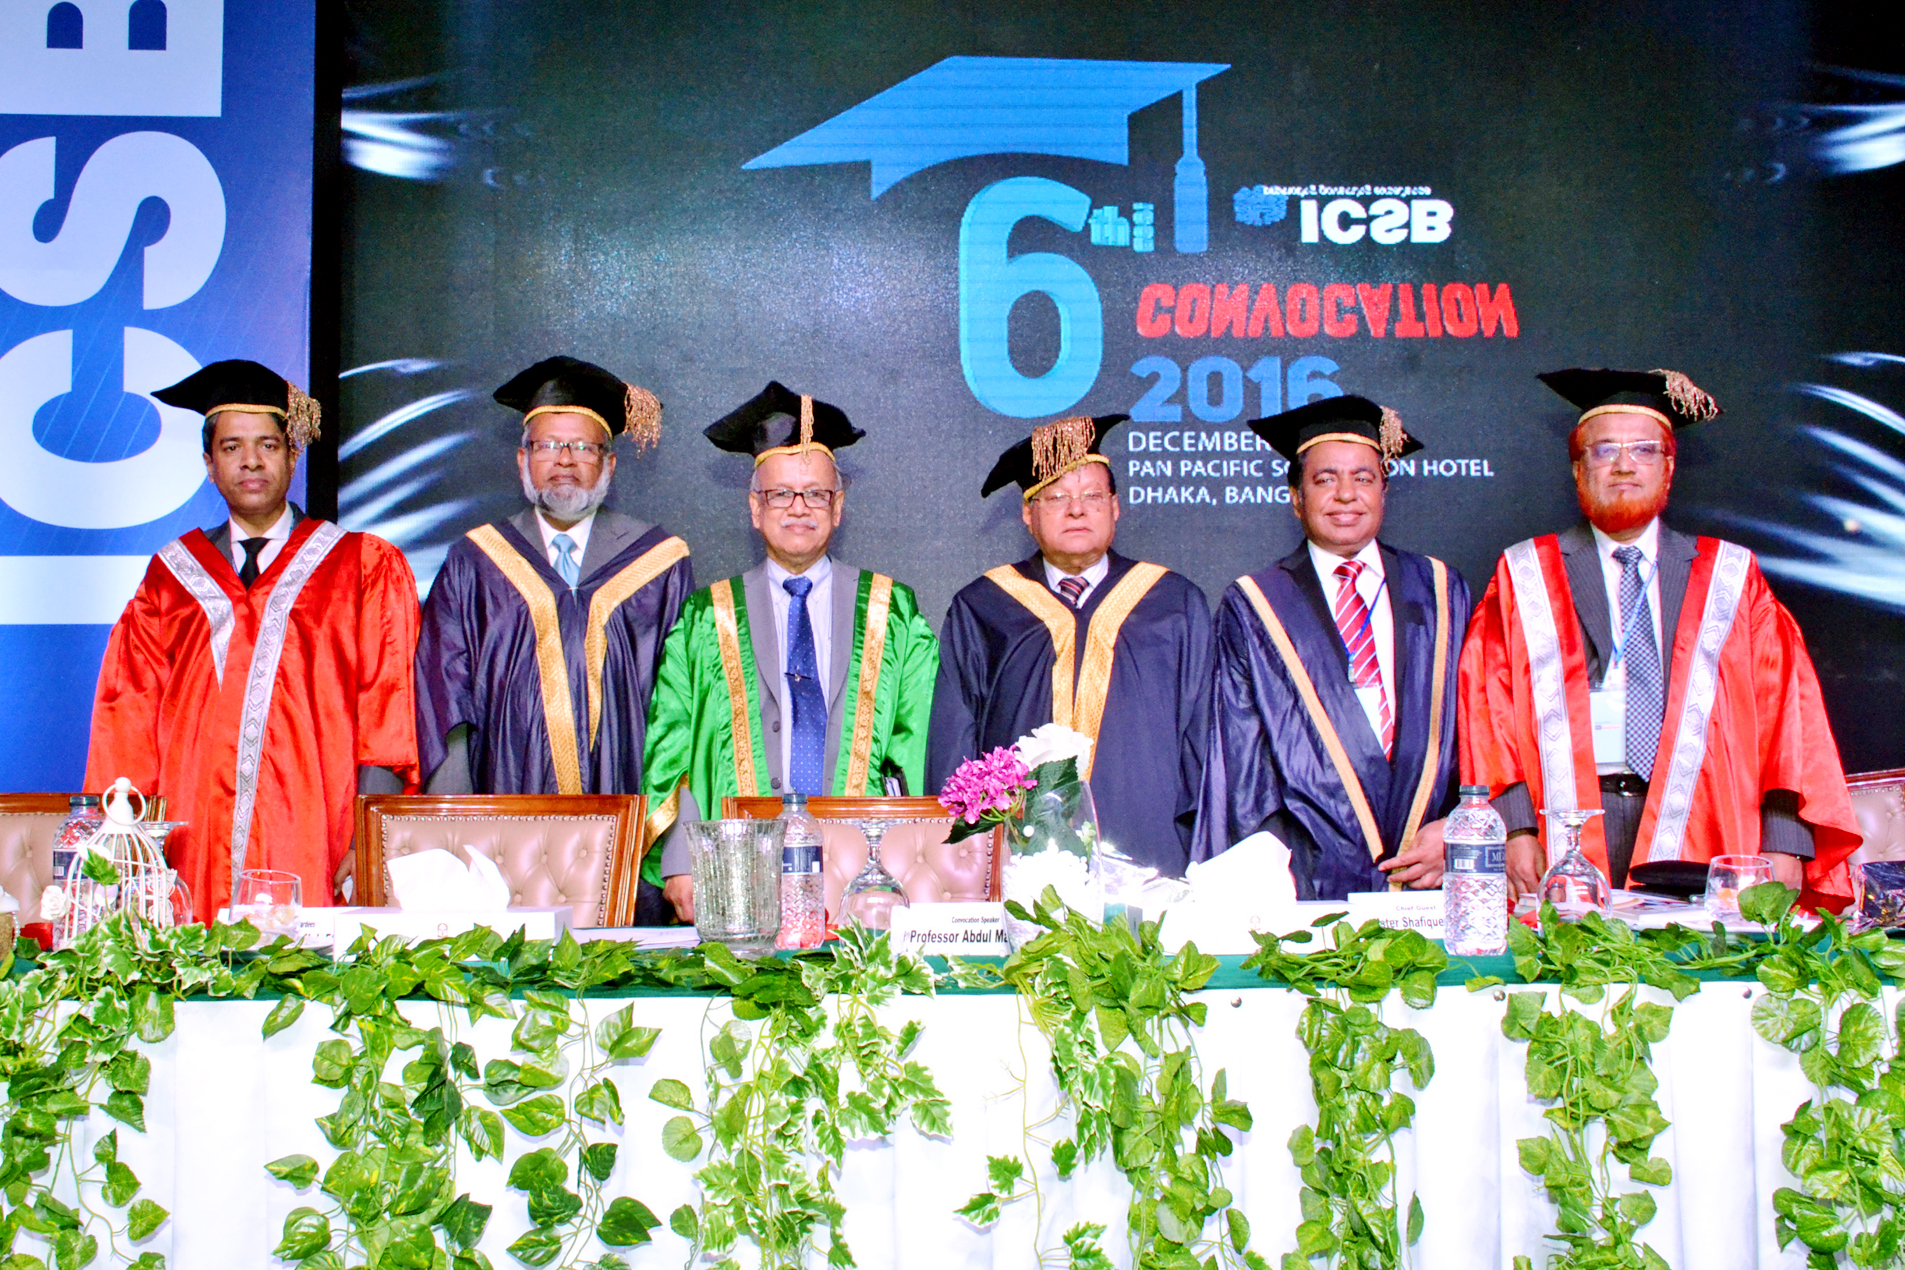 6th convocation  2016 of icsb